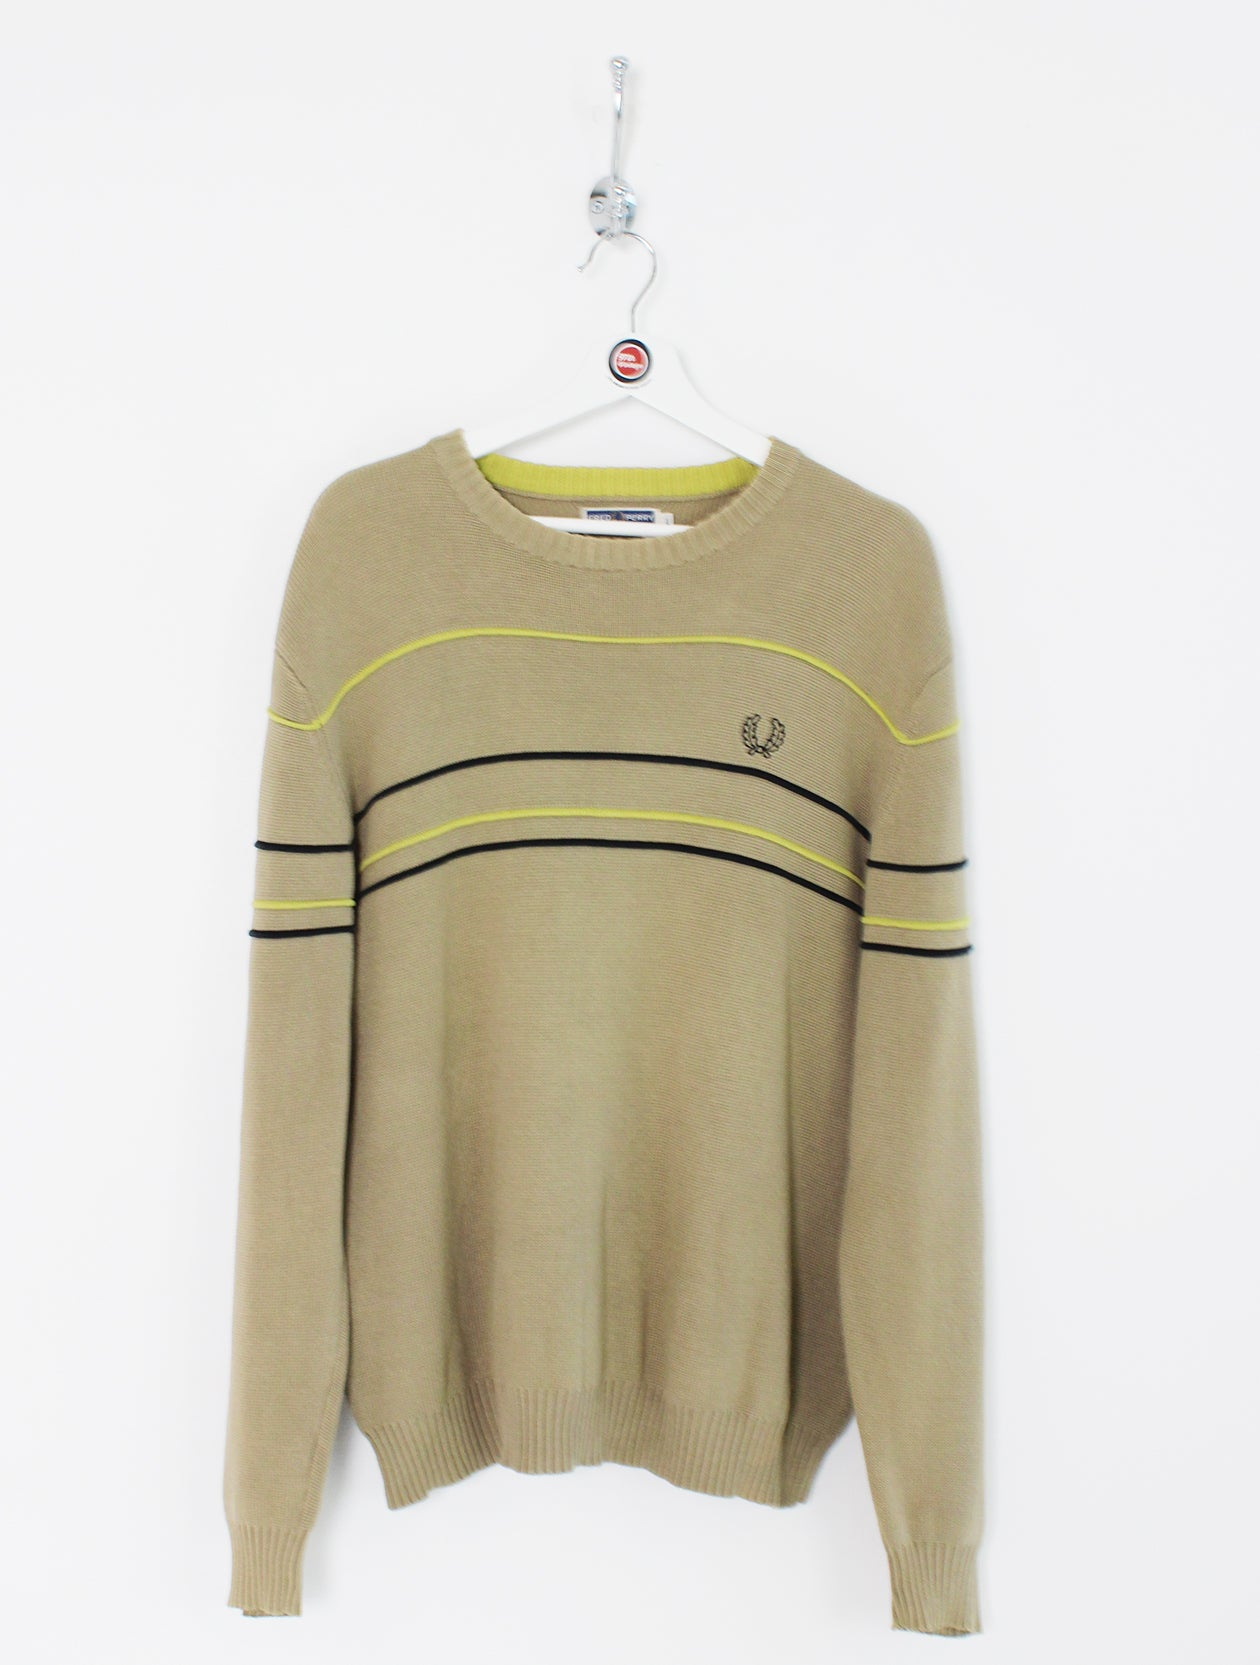 Fred Perry Jumper (L)